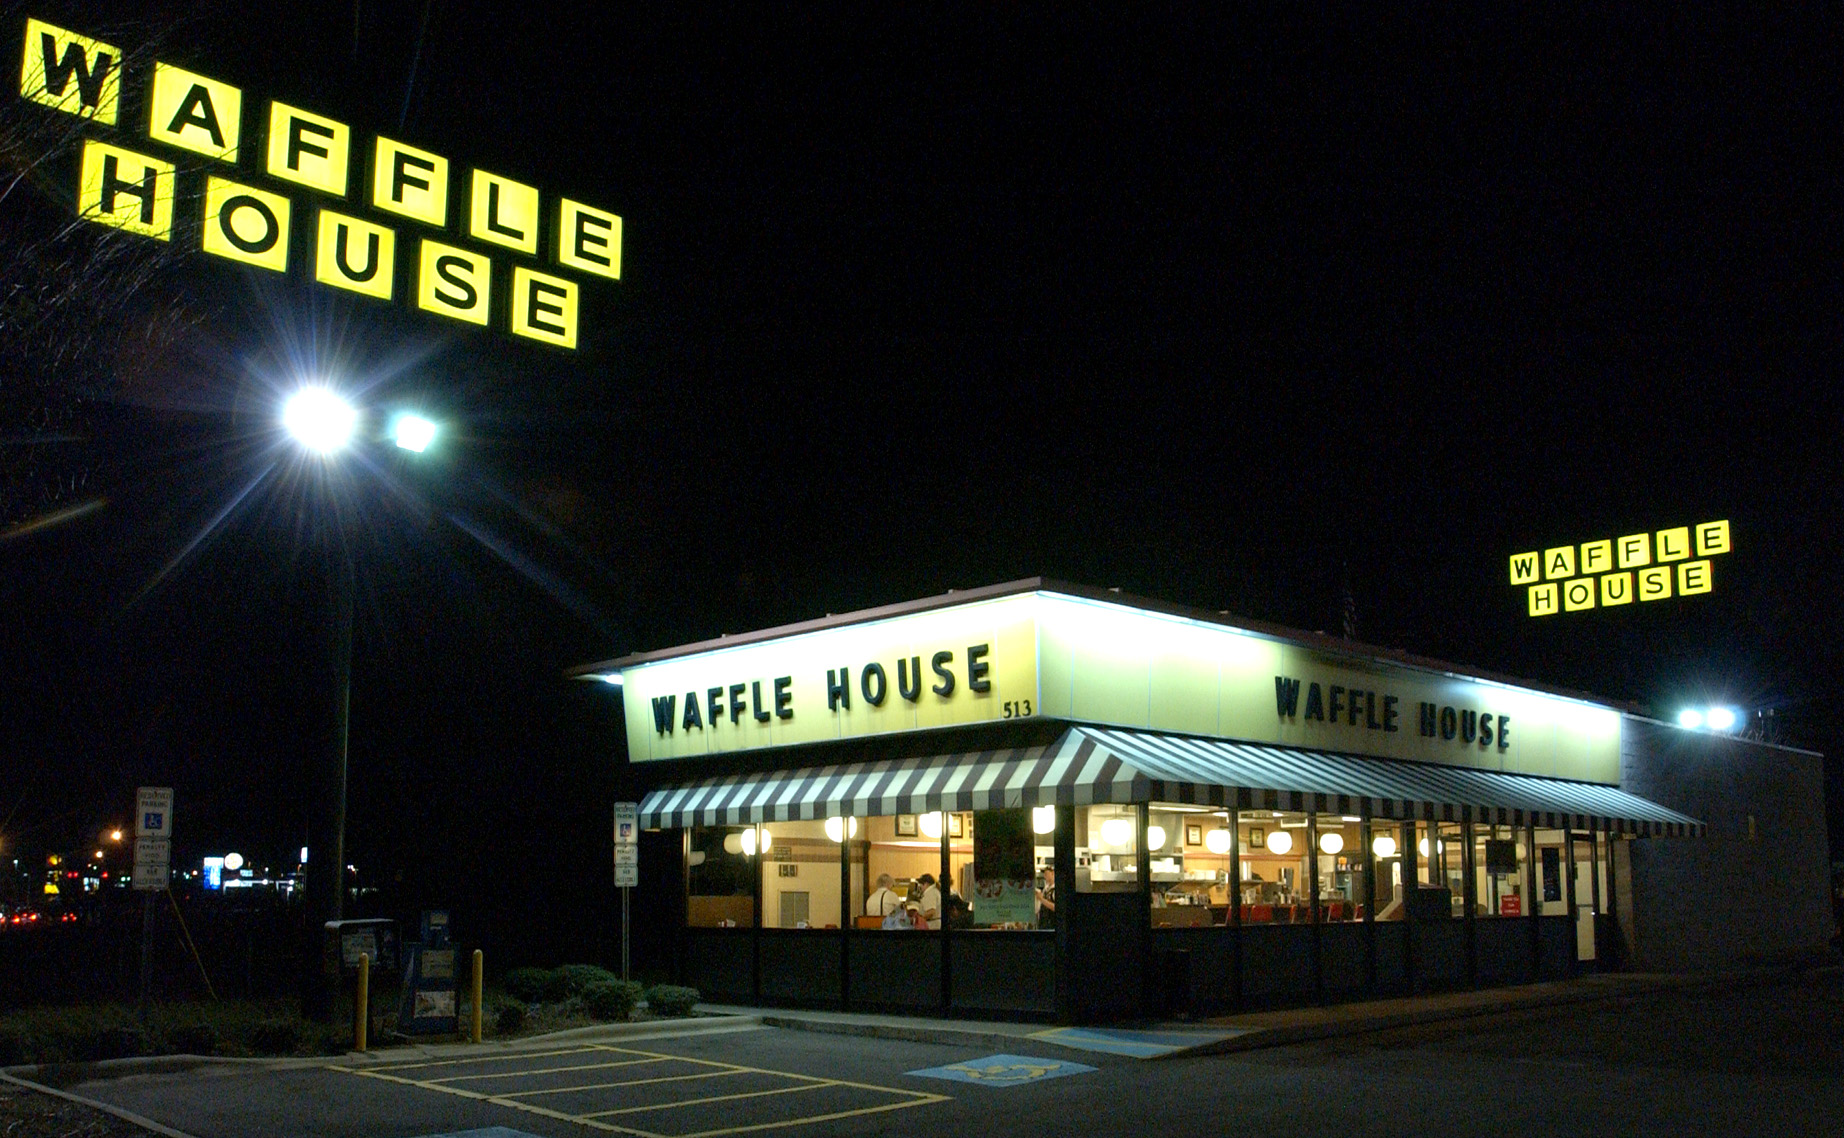 Waffle House Restaurant and Sign